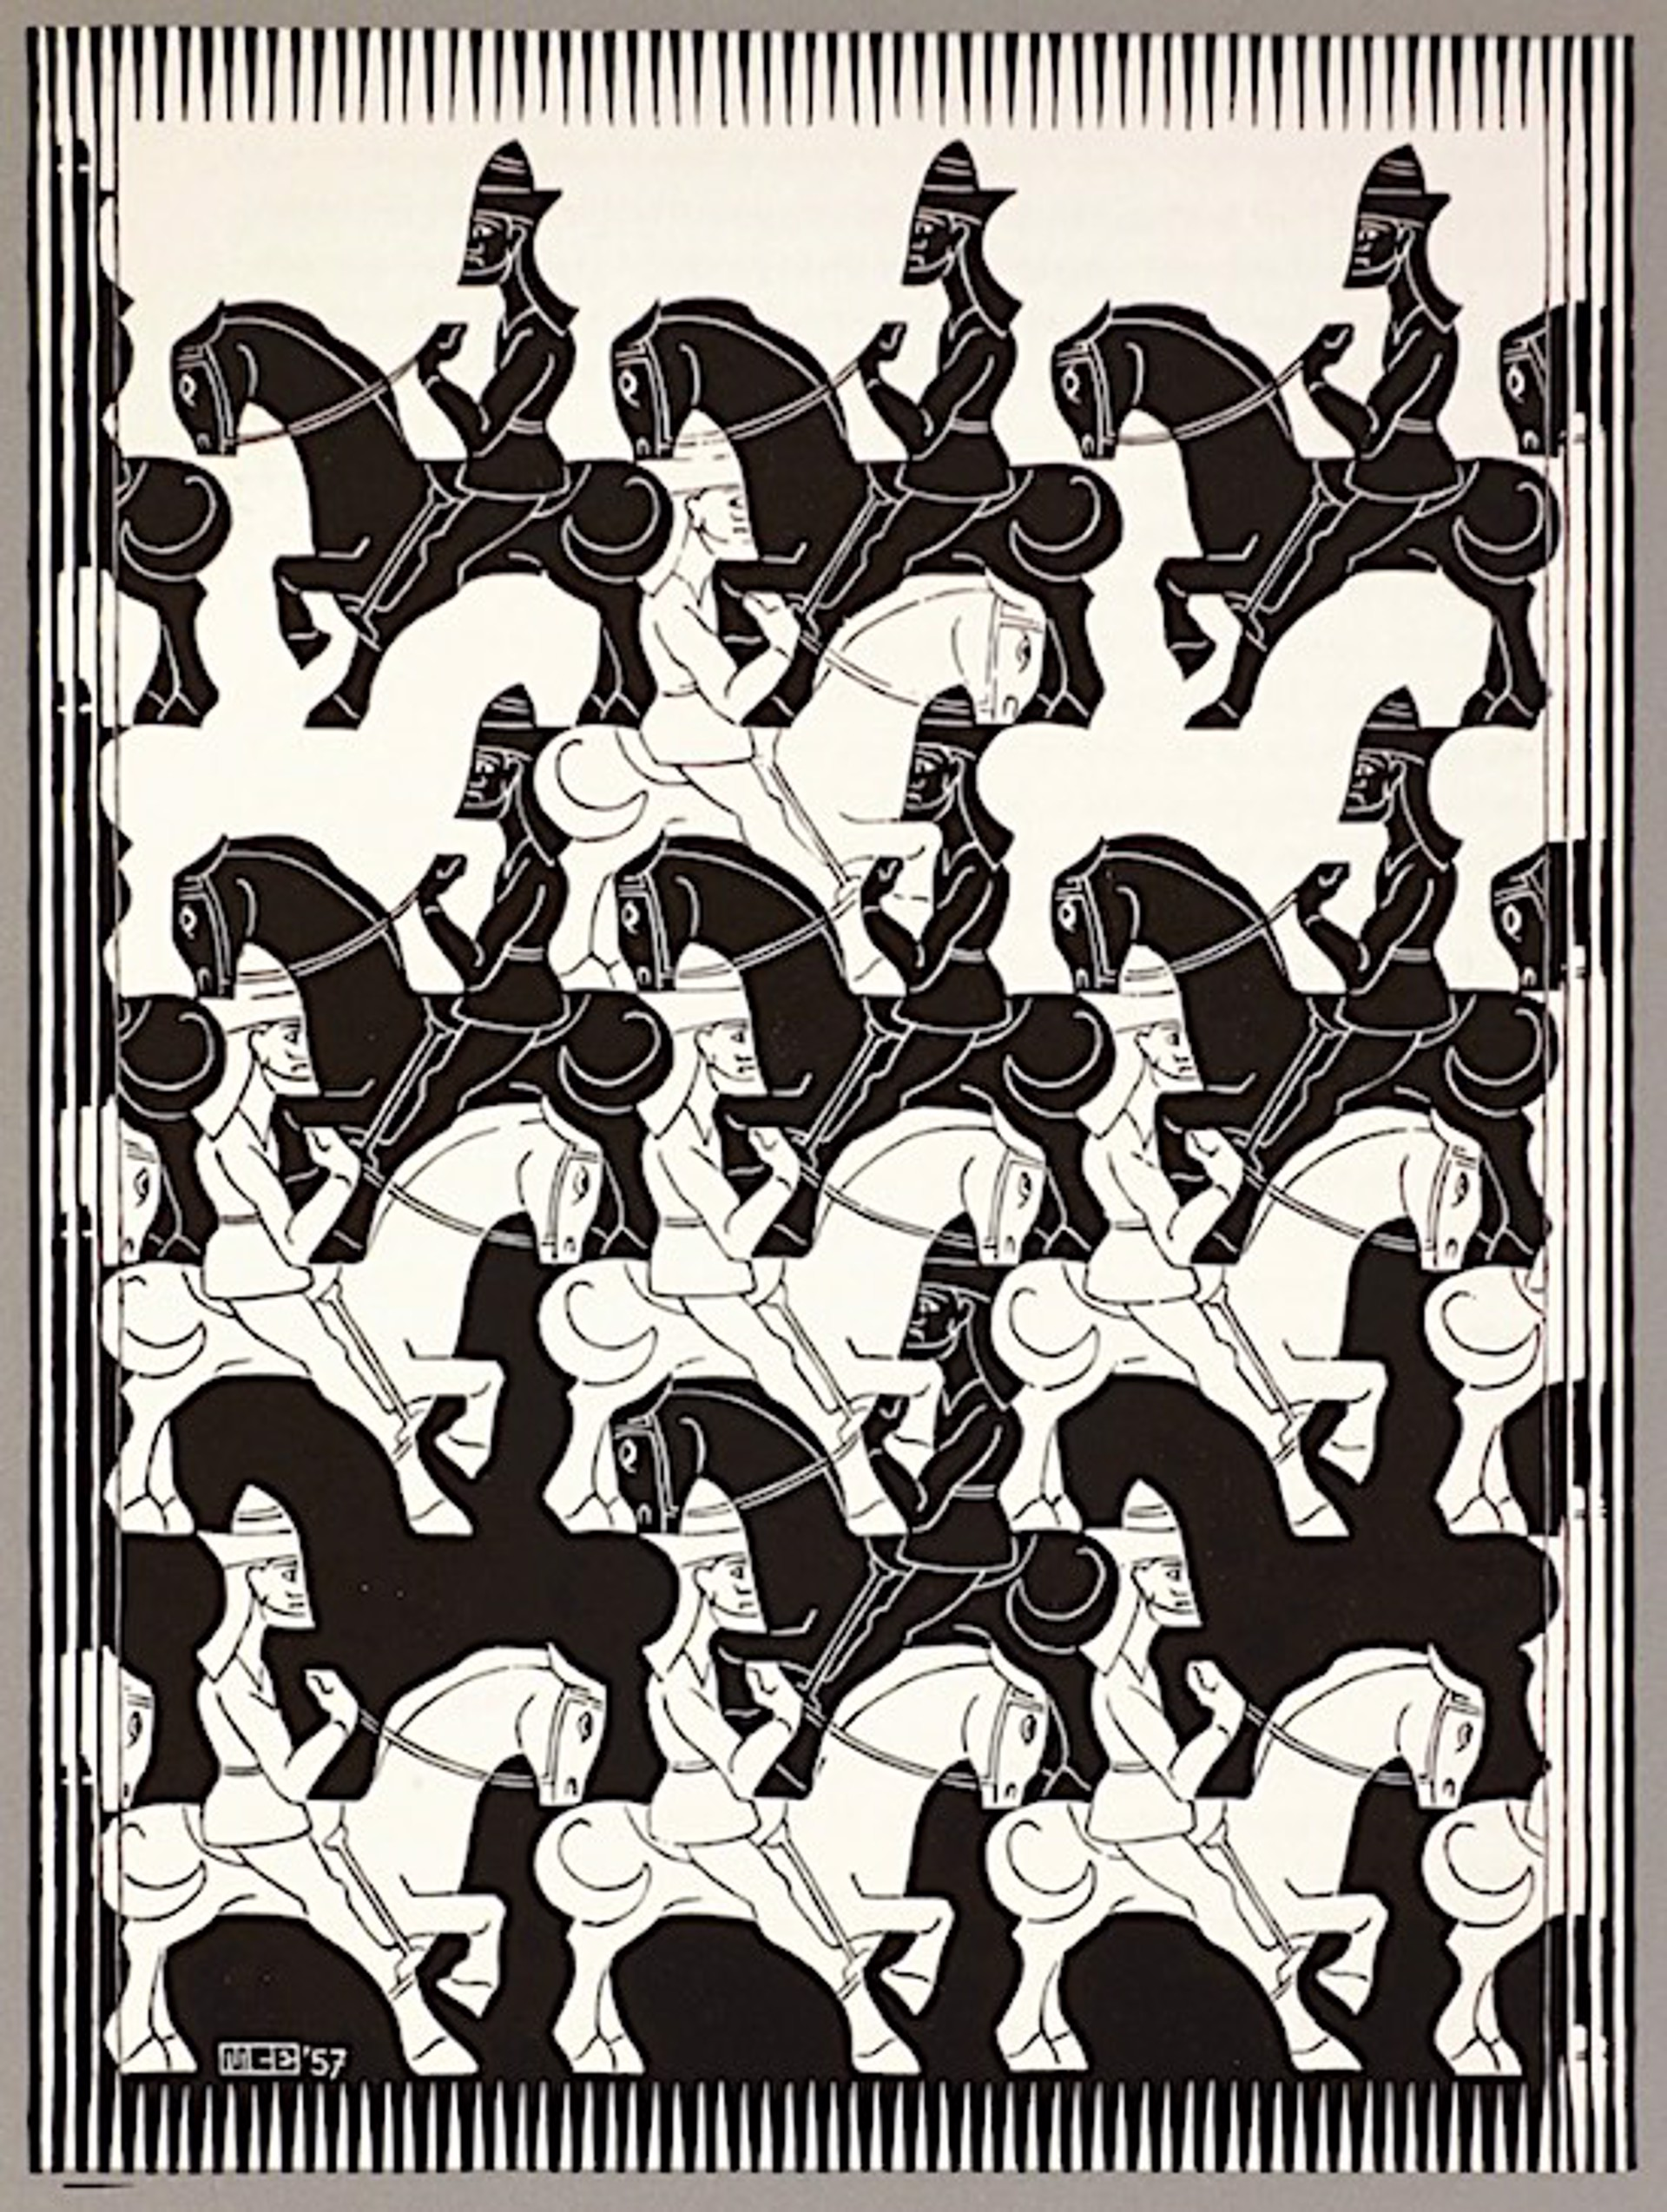 Regular Division of the Plane III by M.C. Escher